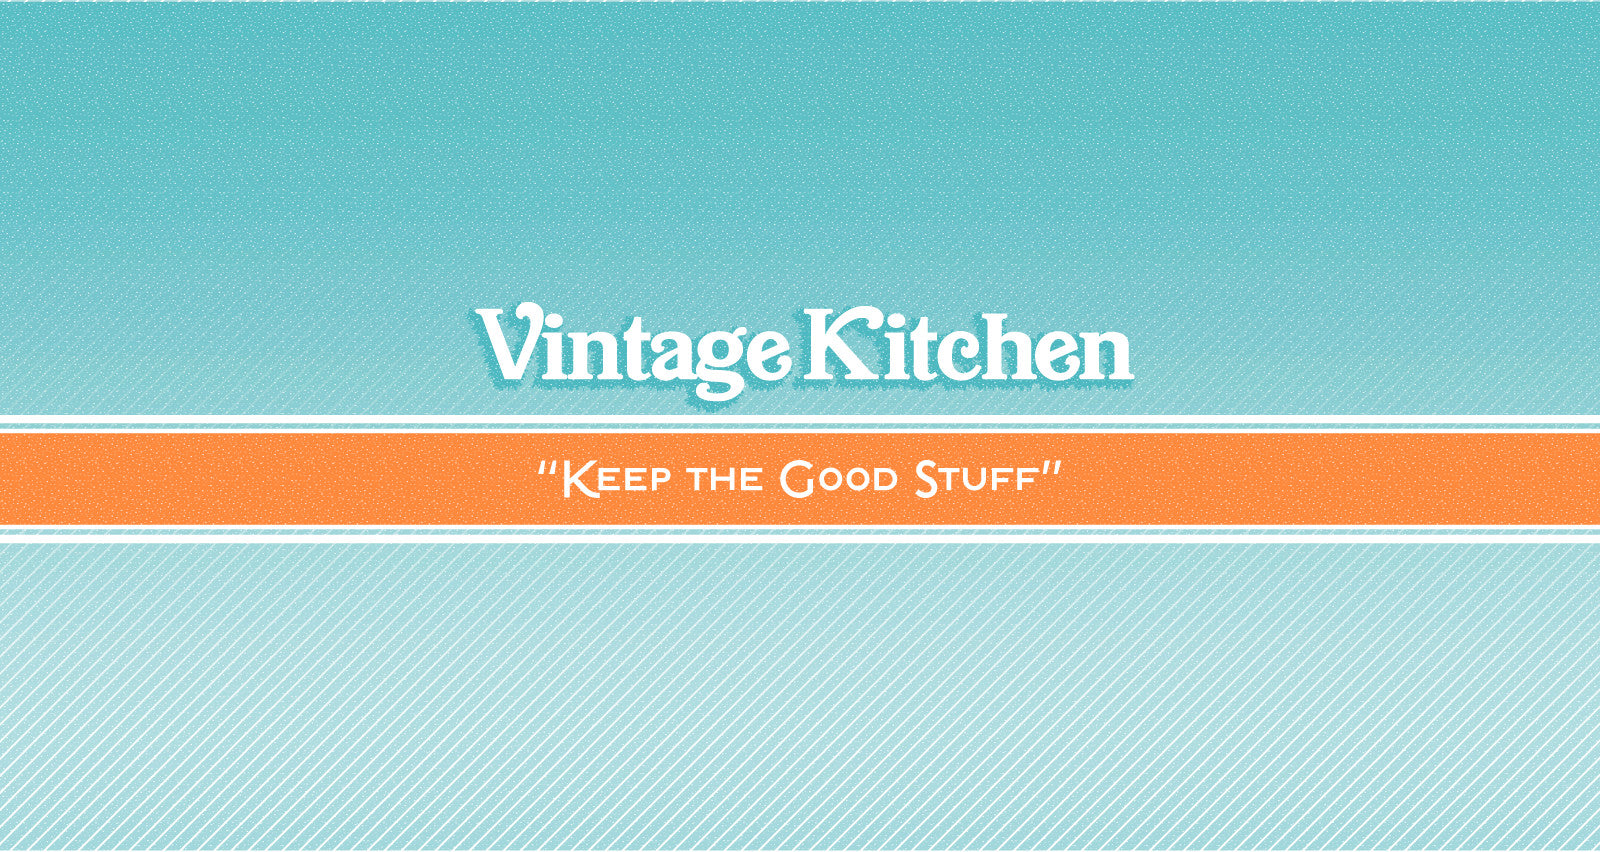 Vintage Kitchen Appliances Ltd.